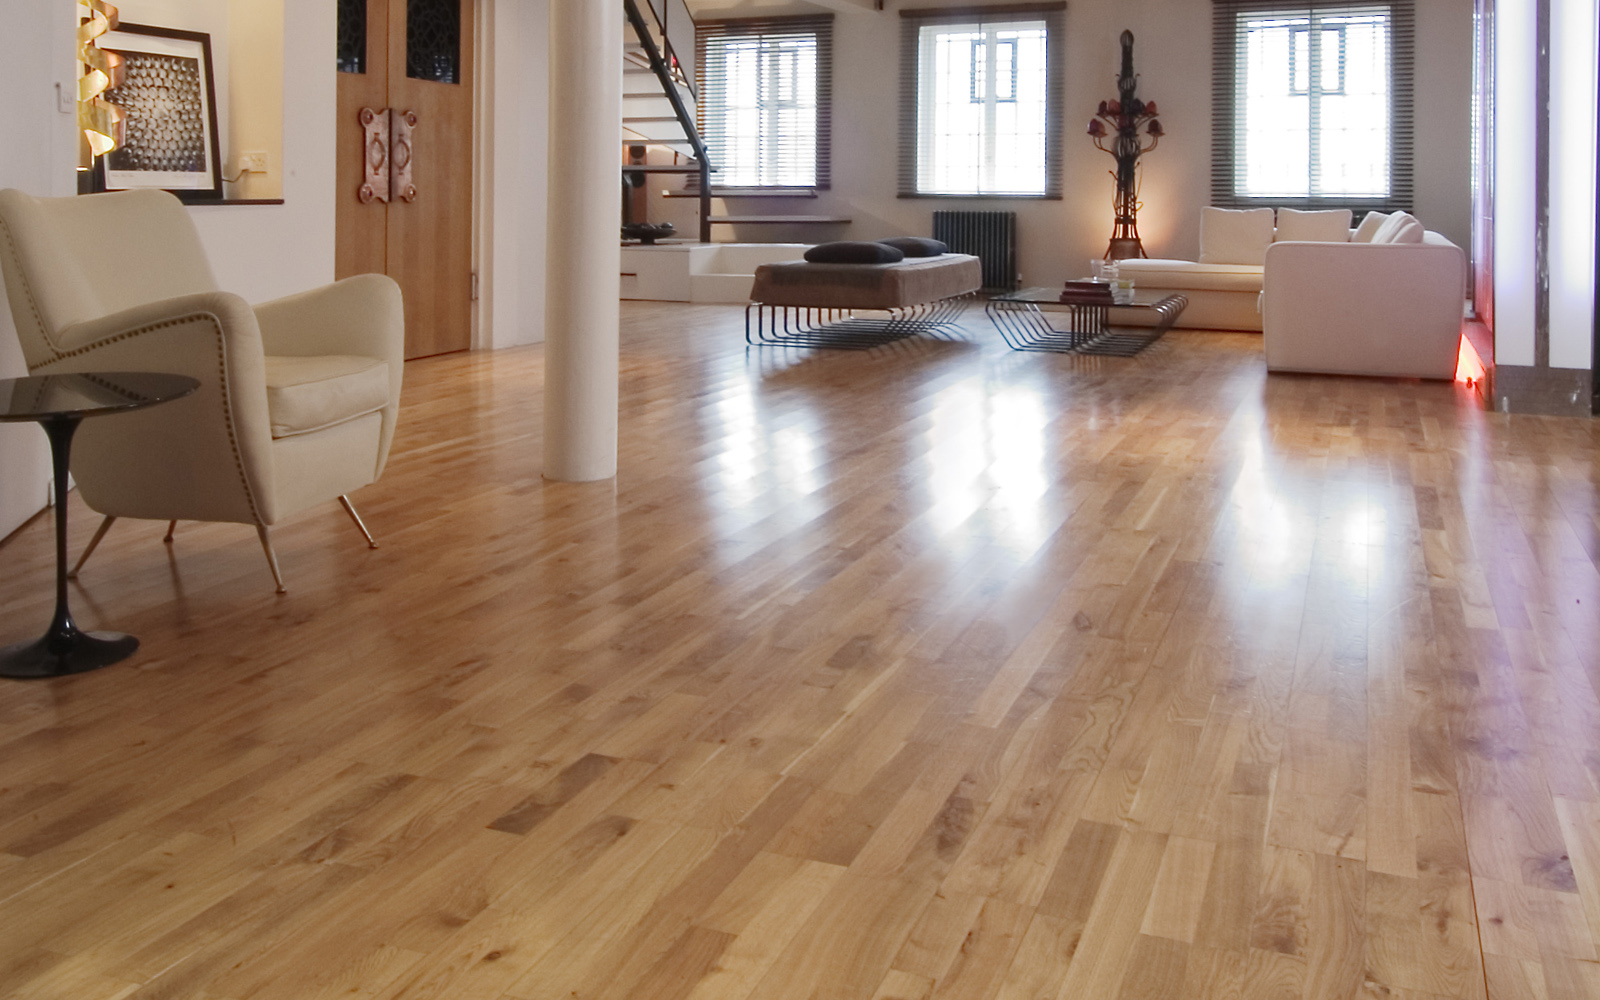 Hamptons 129mm Commercial Grade Solid Oak Nature Matt Varnished Wood Floor